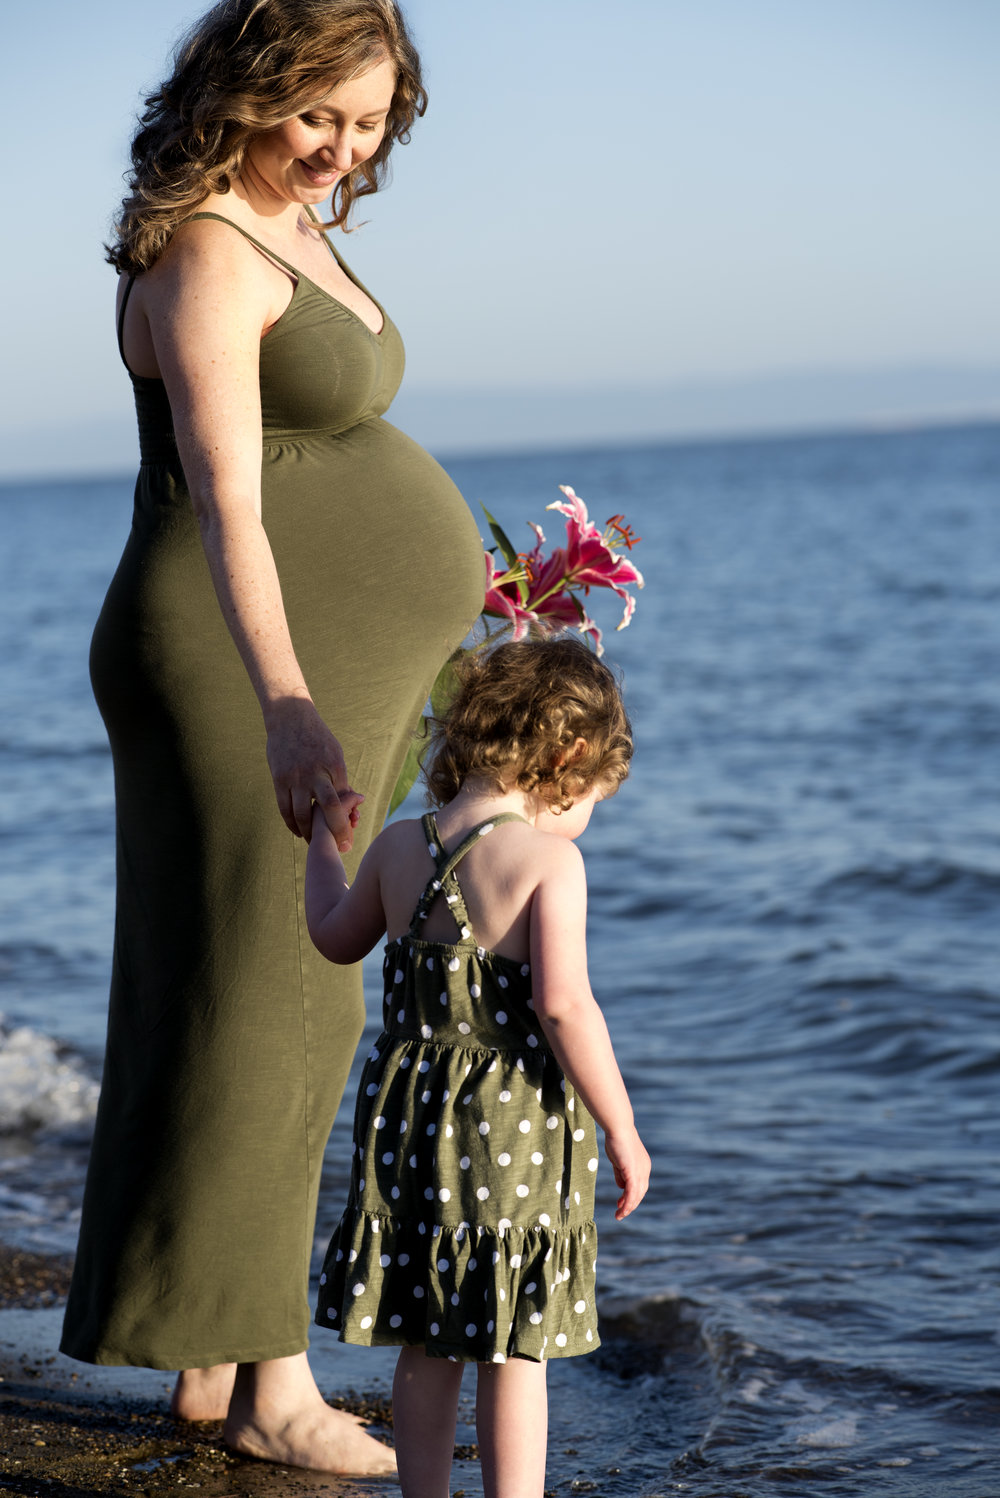 Lets_Spread_Beauty_Photography_Maternity20150620_0030.jpg